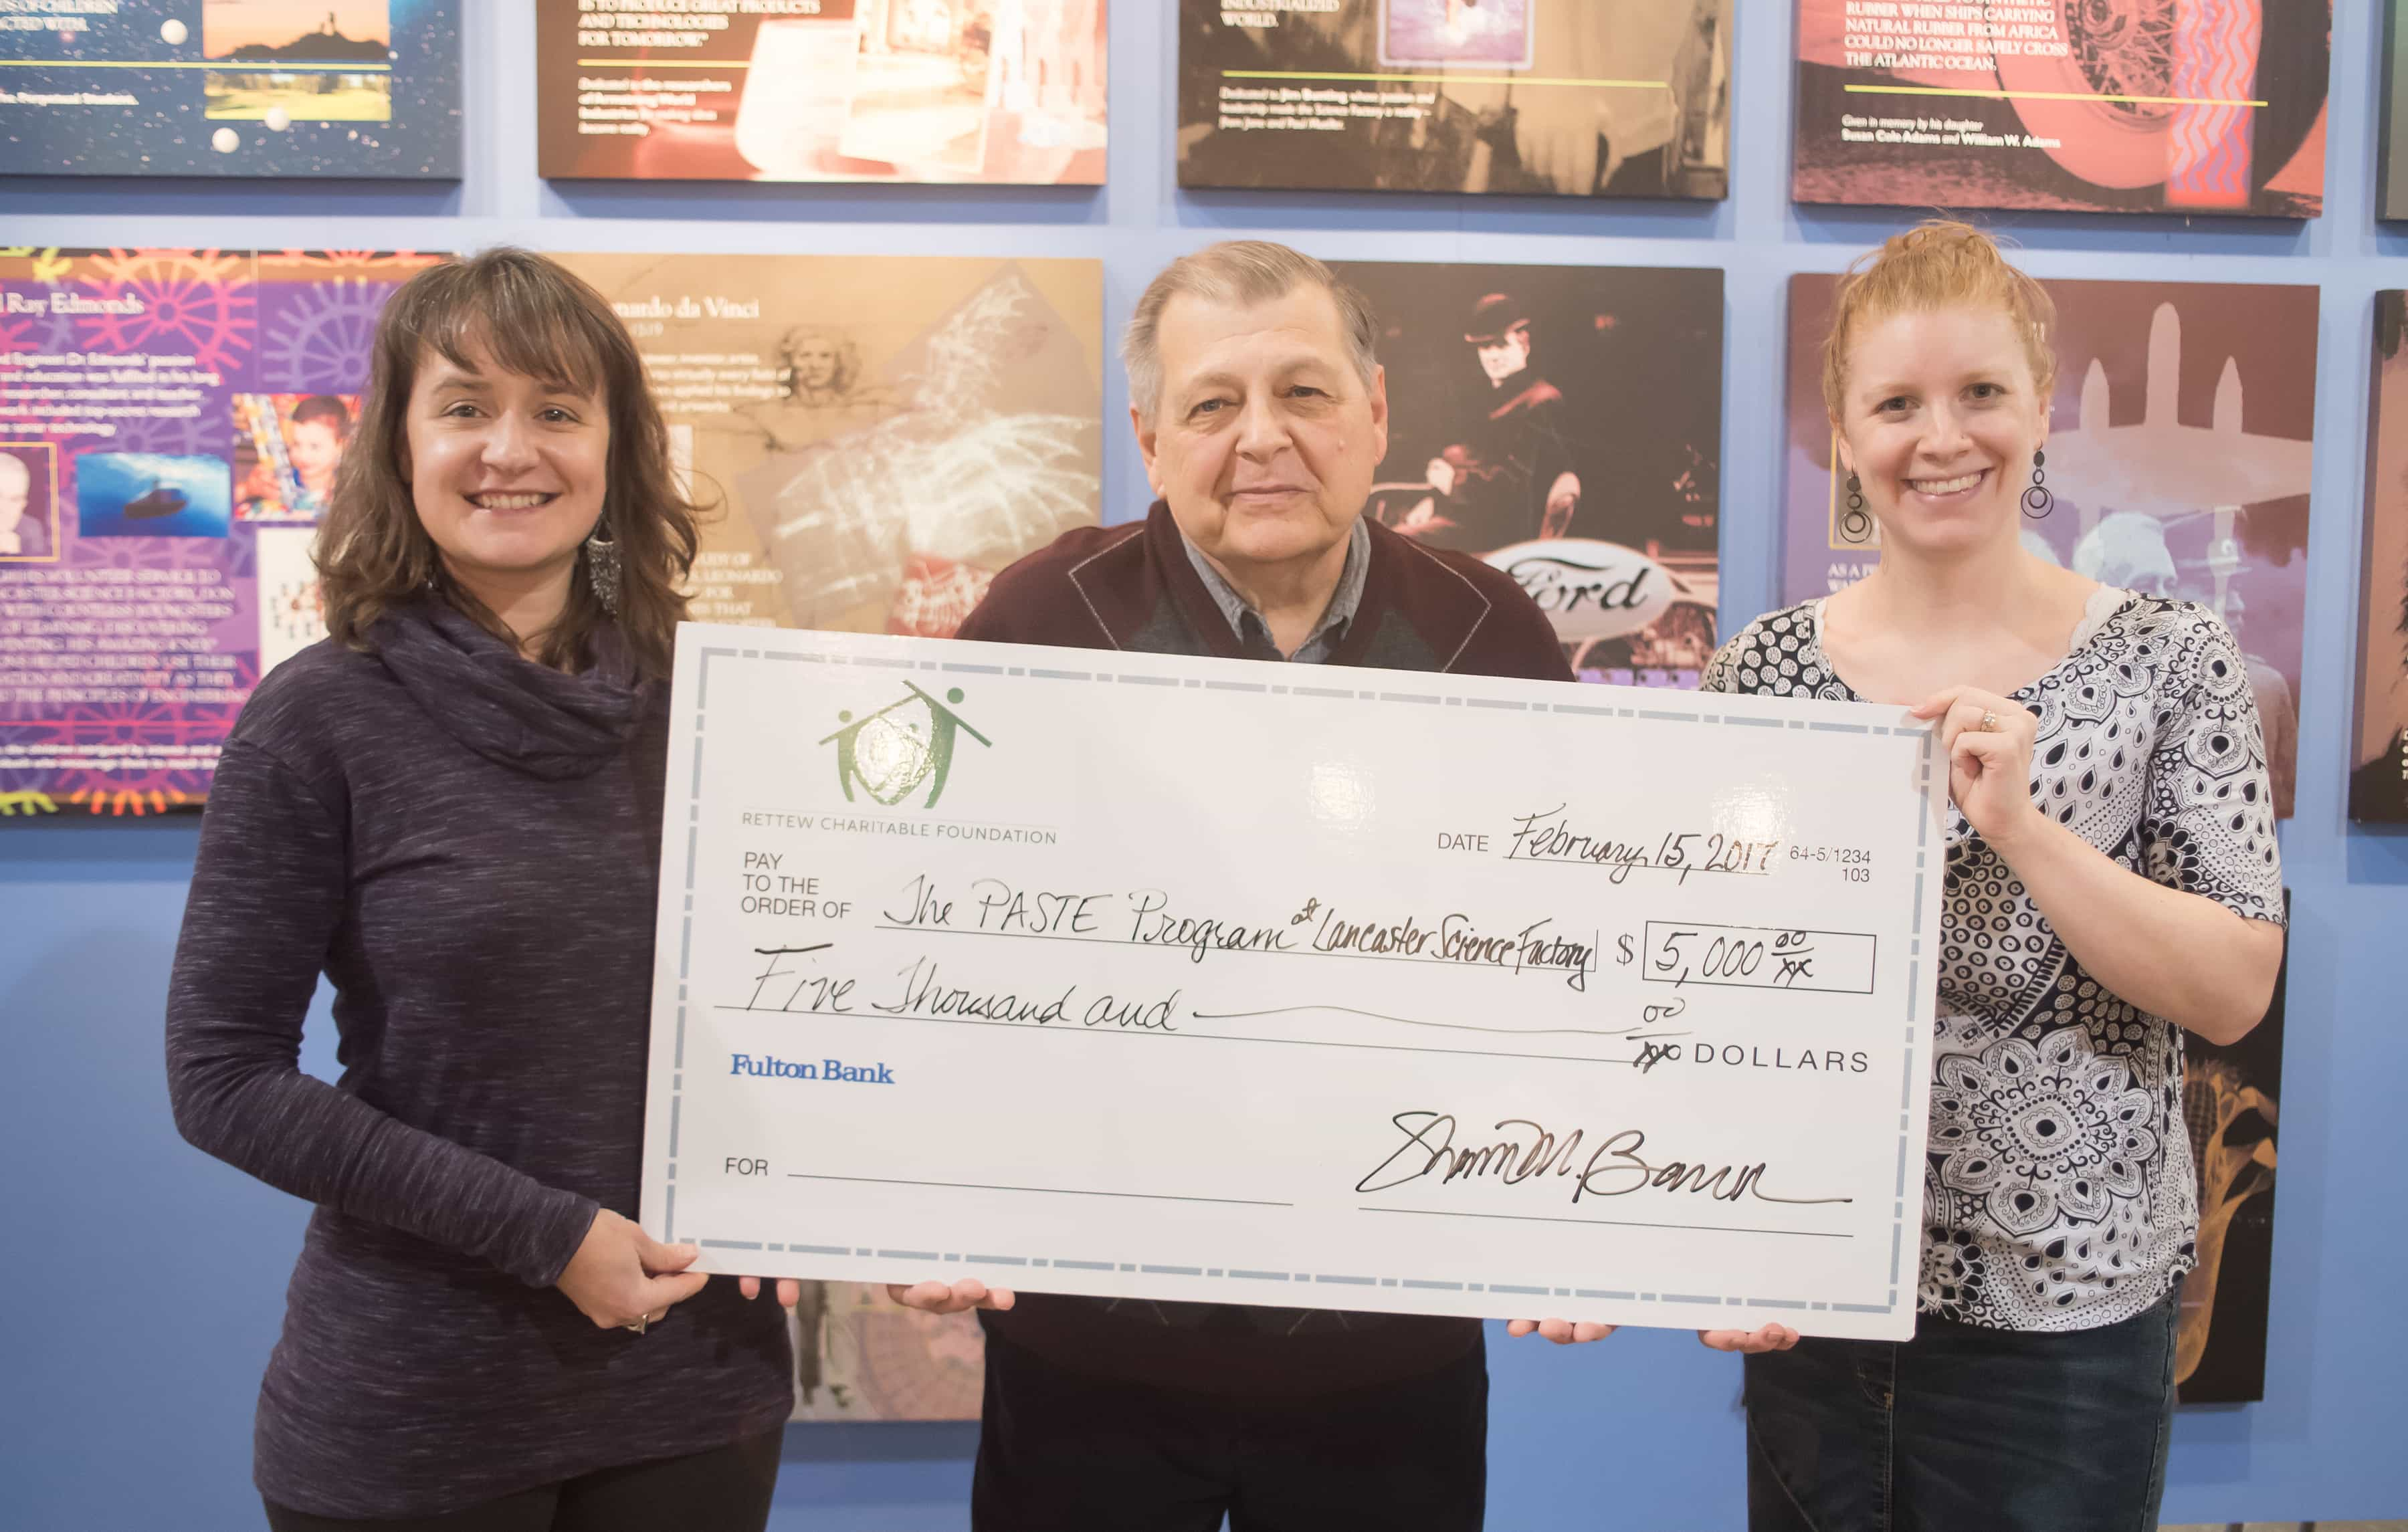 RCF to science factory check presentation